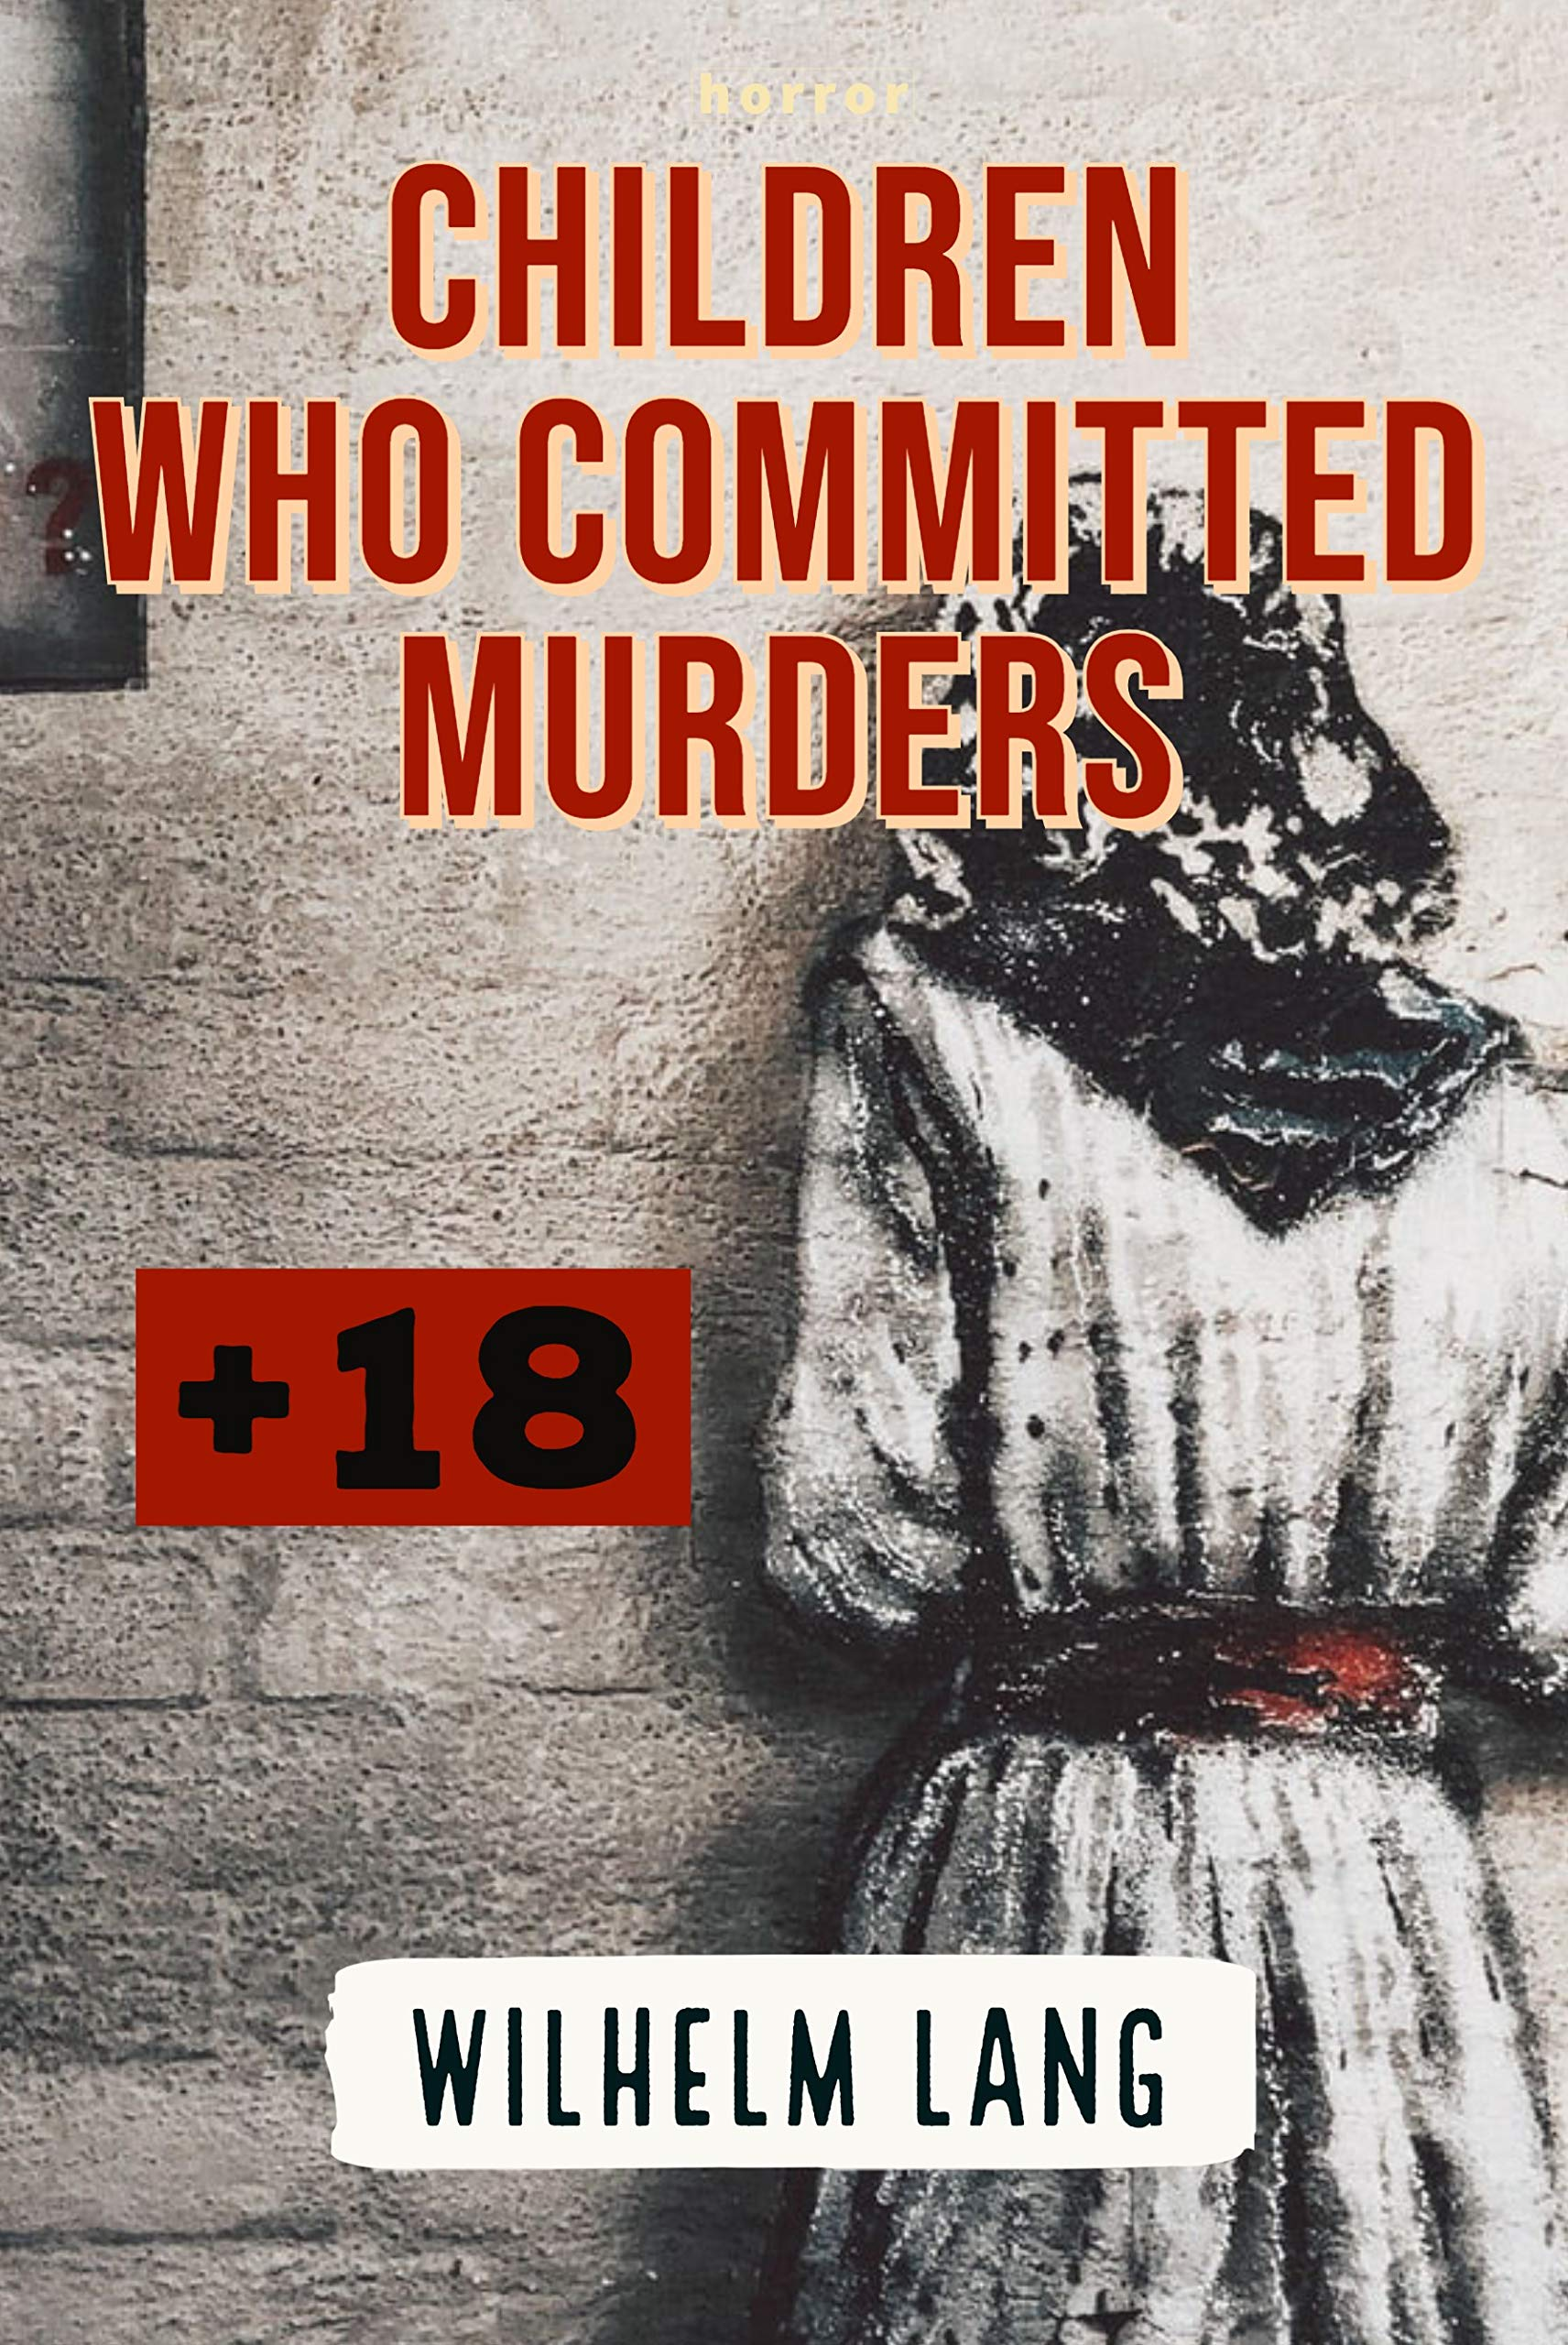 HORROR: CHILDREN WHO COMMITTED MURDERS: 10 Killer Children Who Will Change the Way You See Kids, real horror stories (horror stories book Book 1)